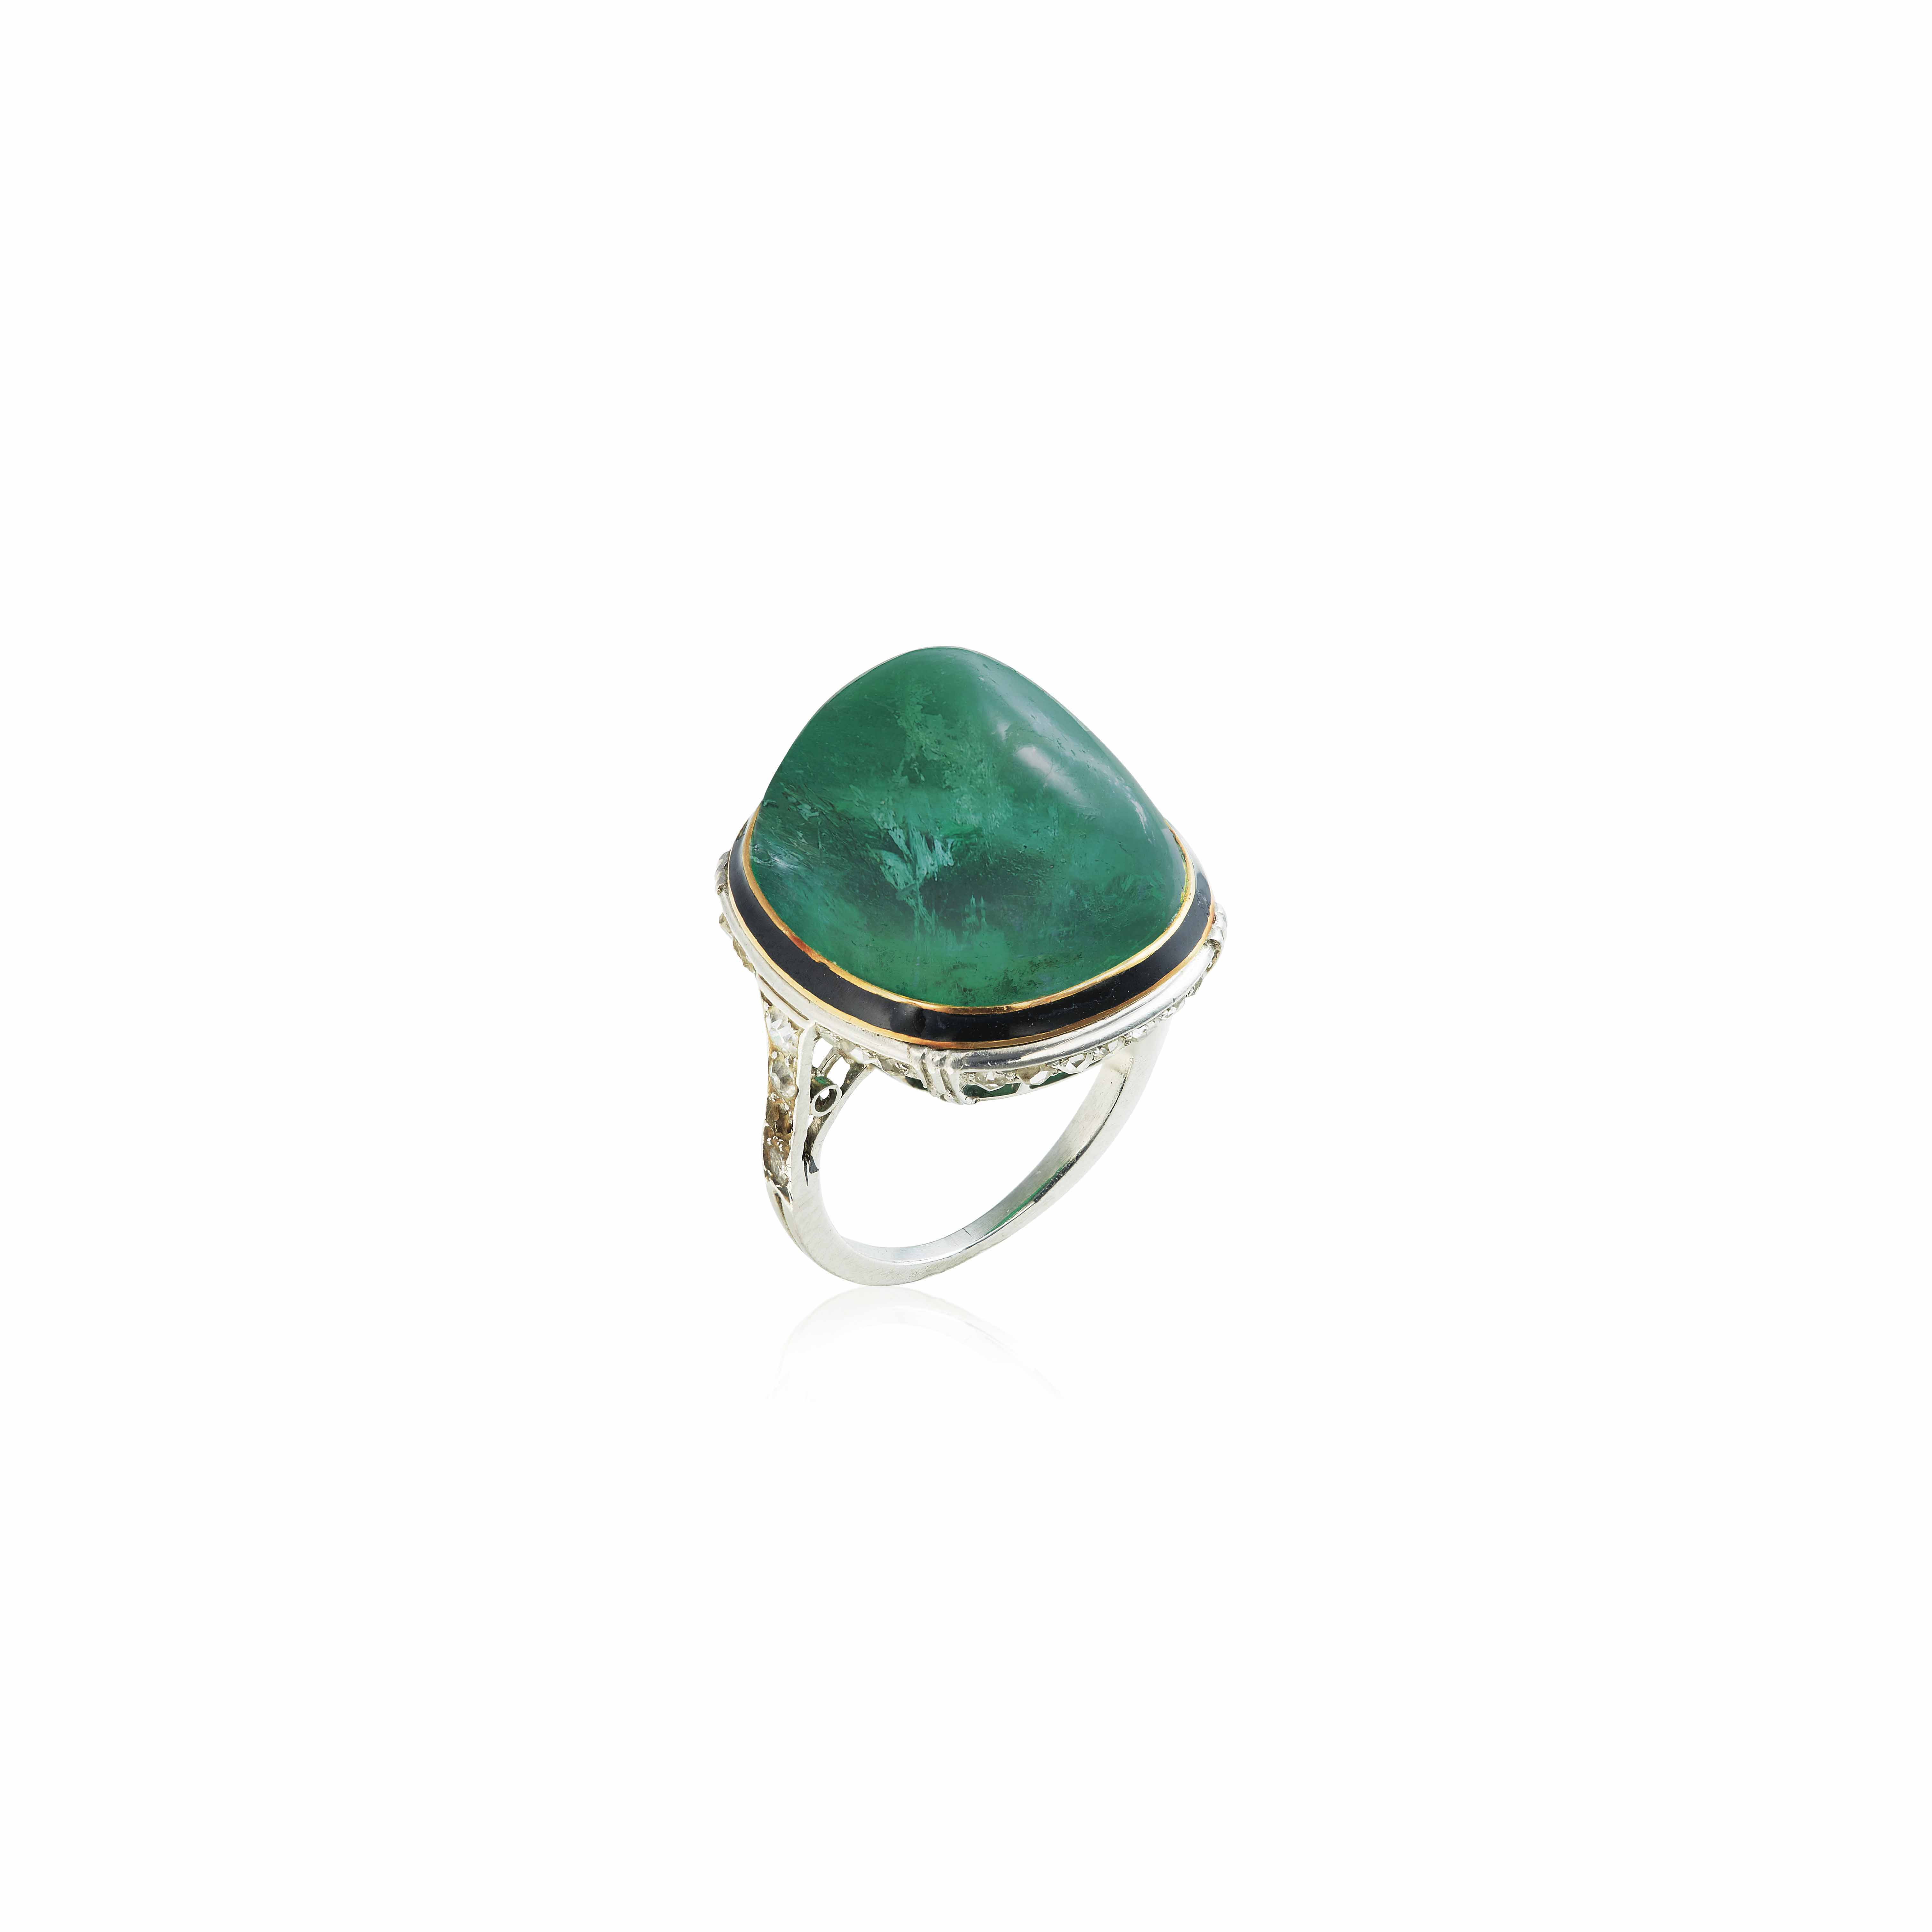 AN ART DÉCO EMERALD, ENAMEL AND DIAMOND RING, BY GEORGES FOUQUET